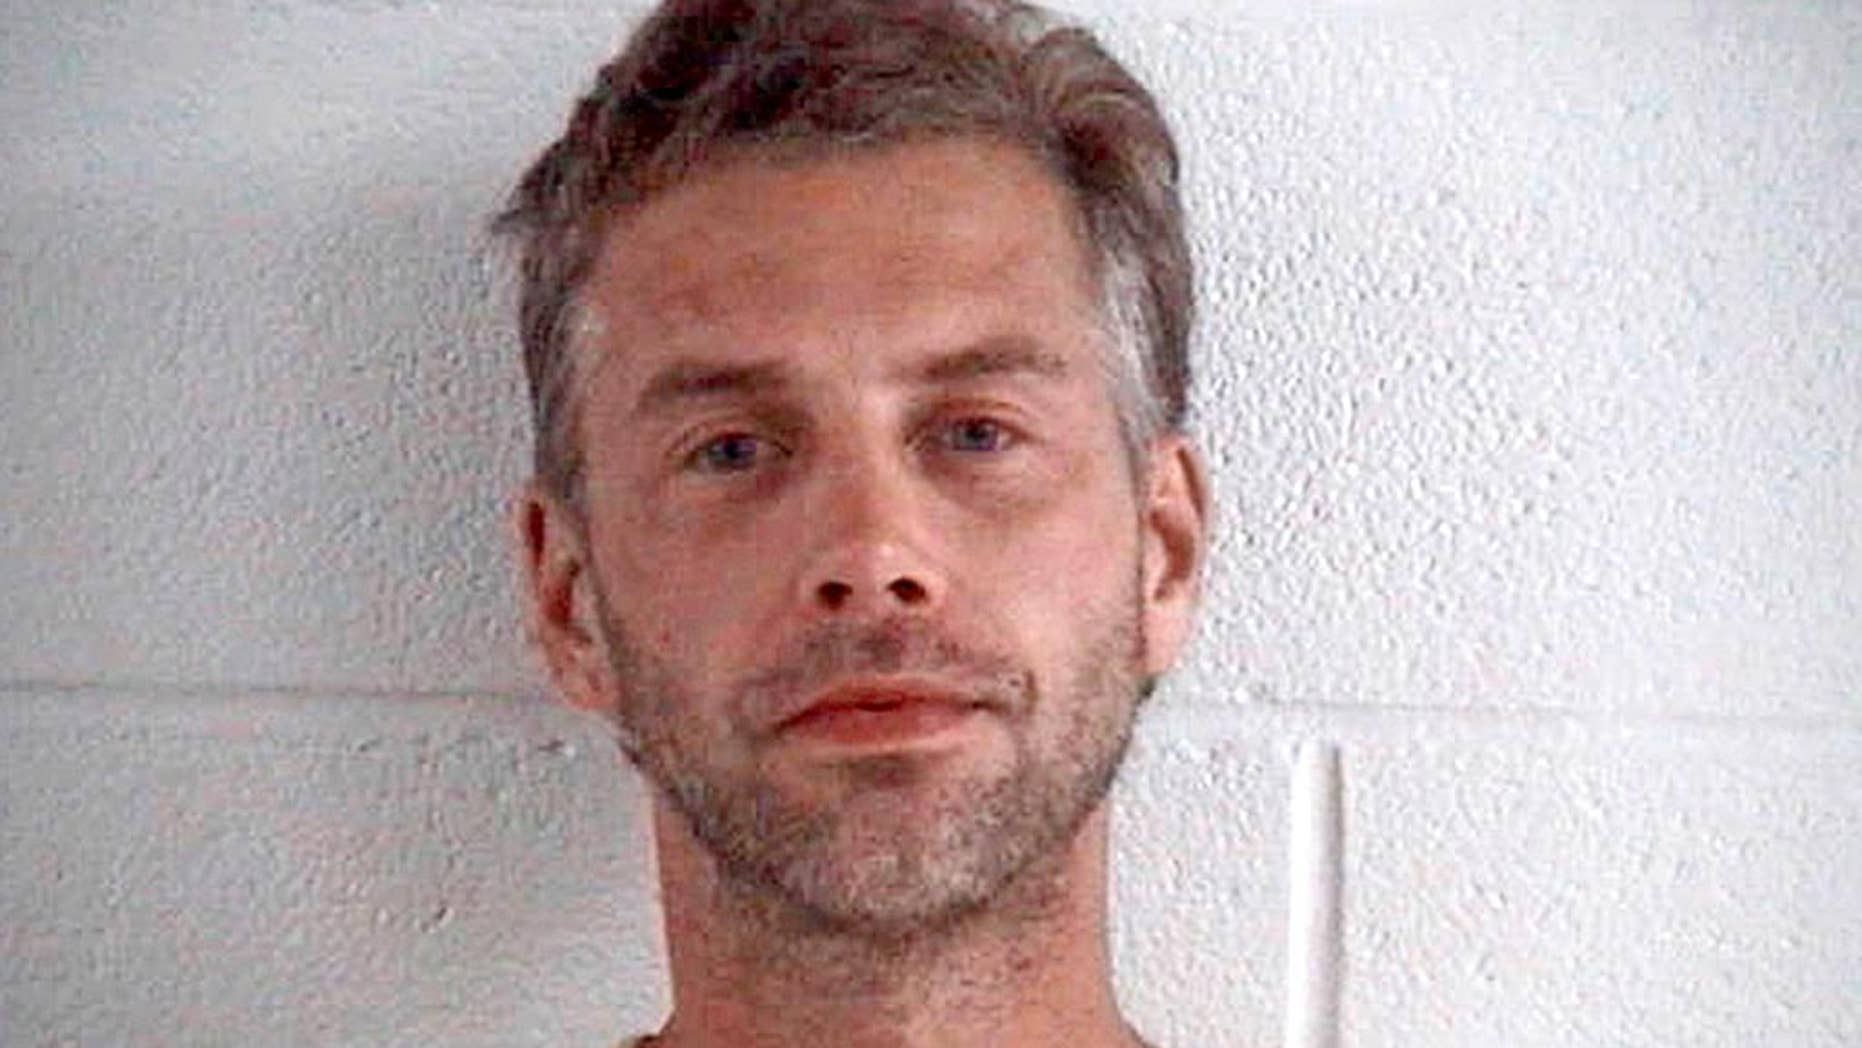 FILE – This file photo provided by the Ashland County Sheriff Office shows Shawn Grate, arrested Sept. 13, 2016, in Ashland, Ohio. Grate, a man linked to the killings of at least four women in Ohio, is due back in court. He is scheduled to appear at a pre-trial hearing on Monday, Oct. 31, in Ashland. (Ashland County Sheriff Office via AP, File)